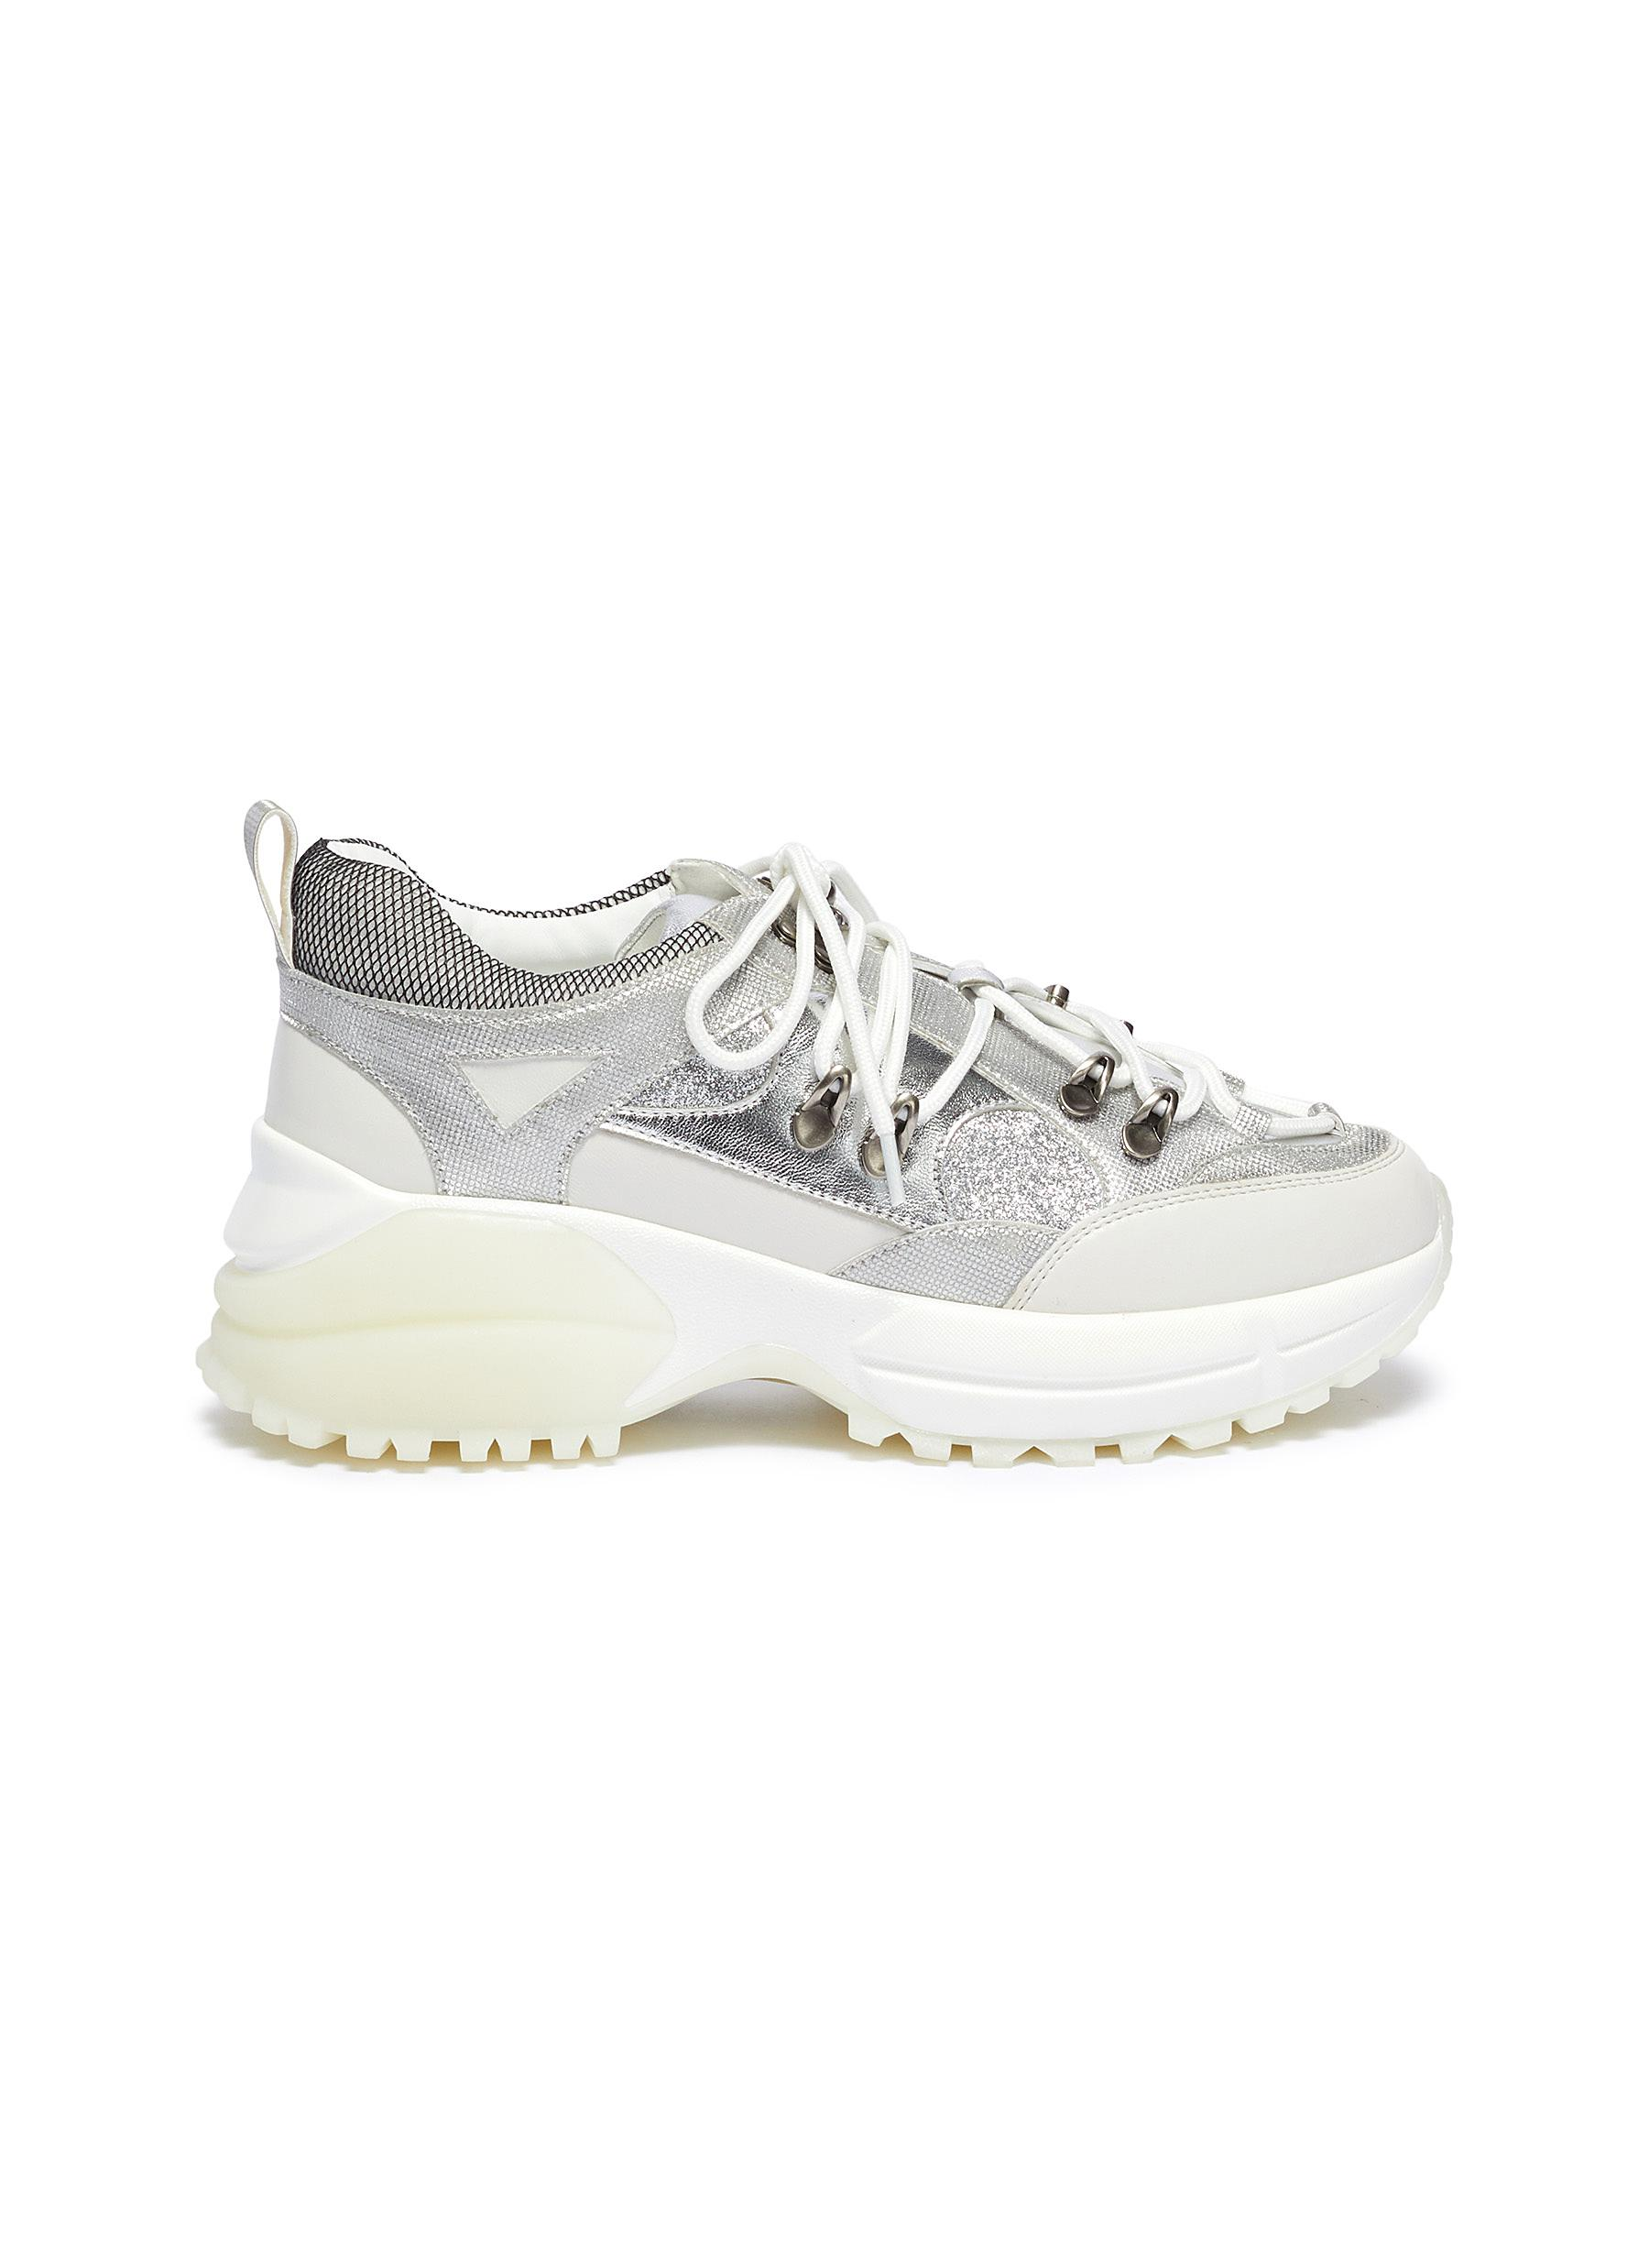 Mia panelled chunky sneakers by Pedder Red